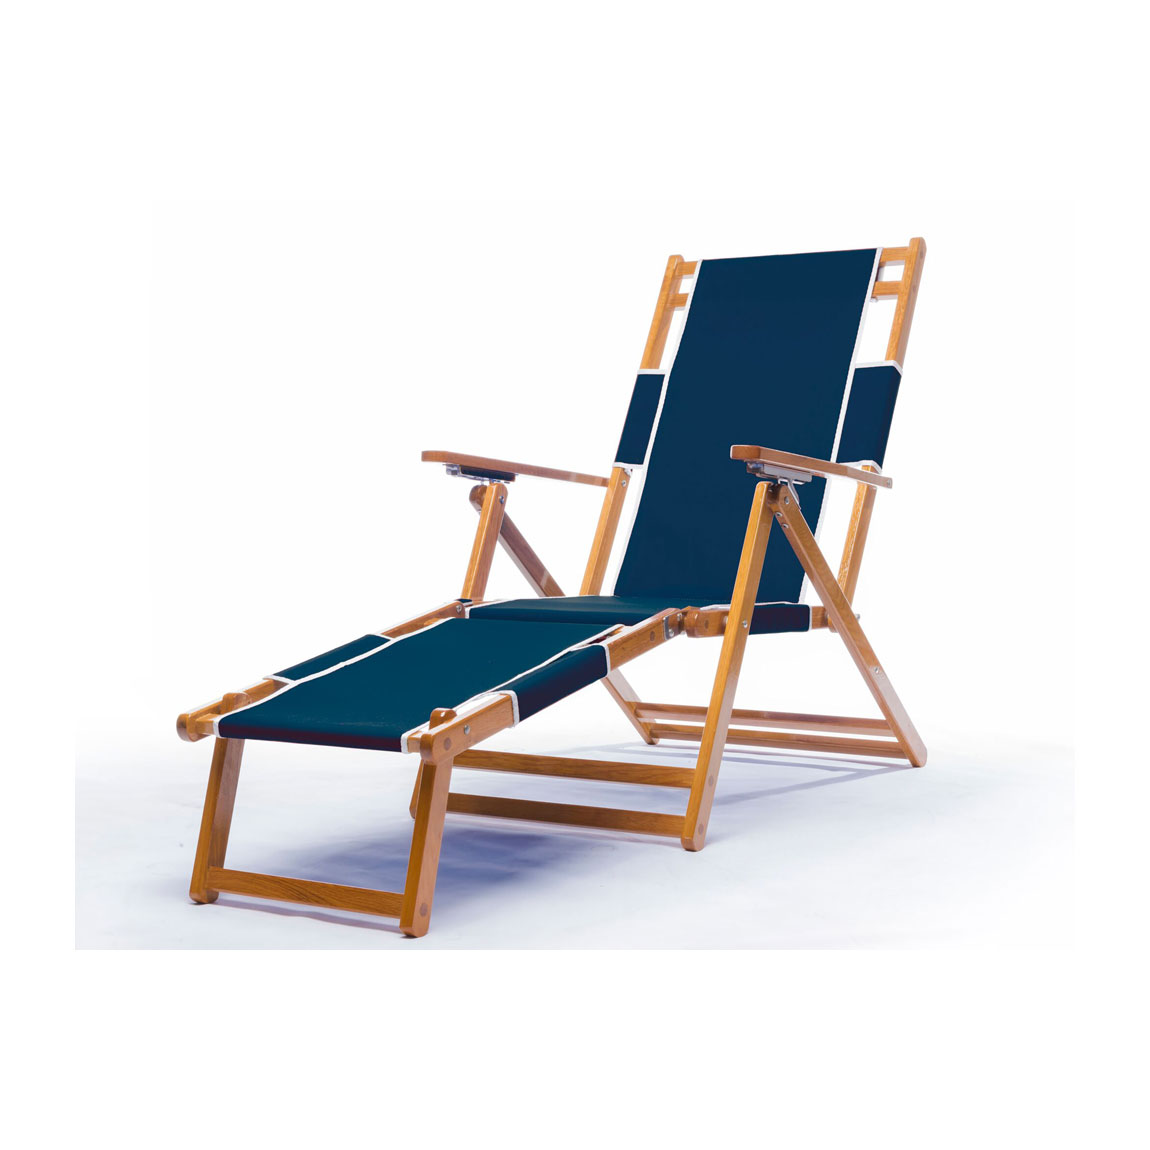 Folding Wood Beach Chair Heavy Duty Commercial Grade Oak Wood Beach Chair Chaise